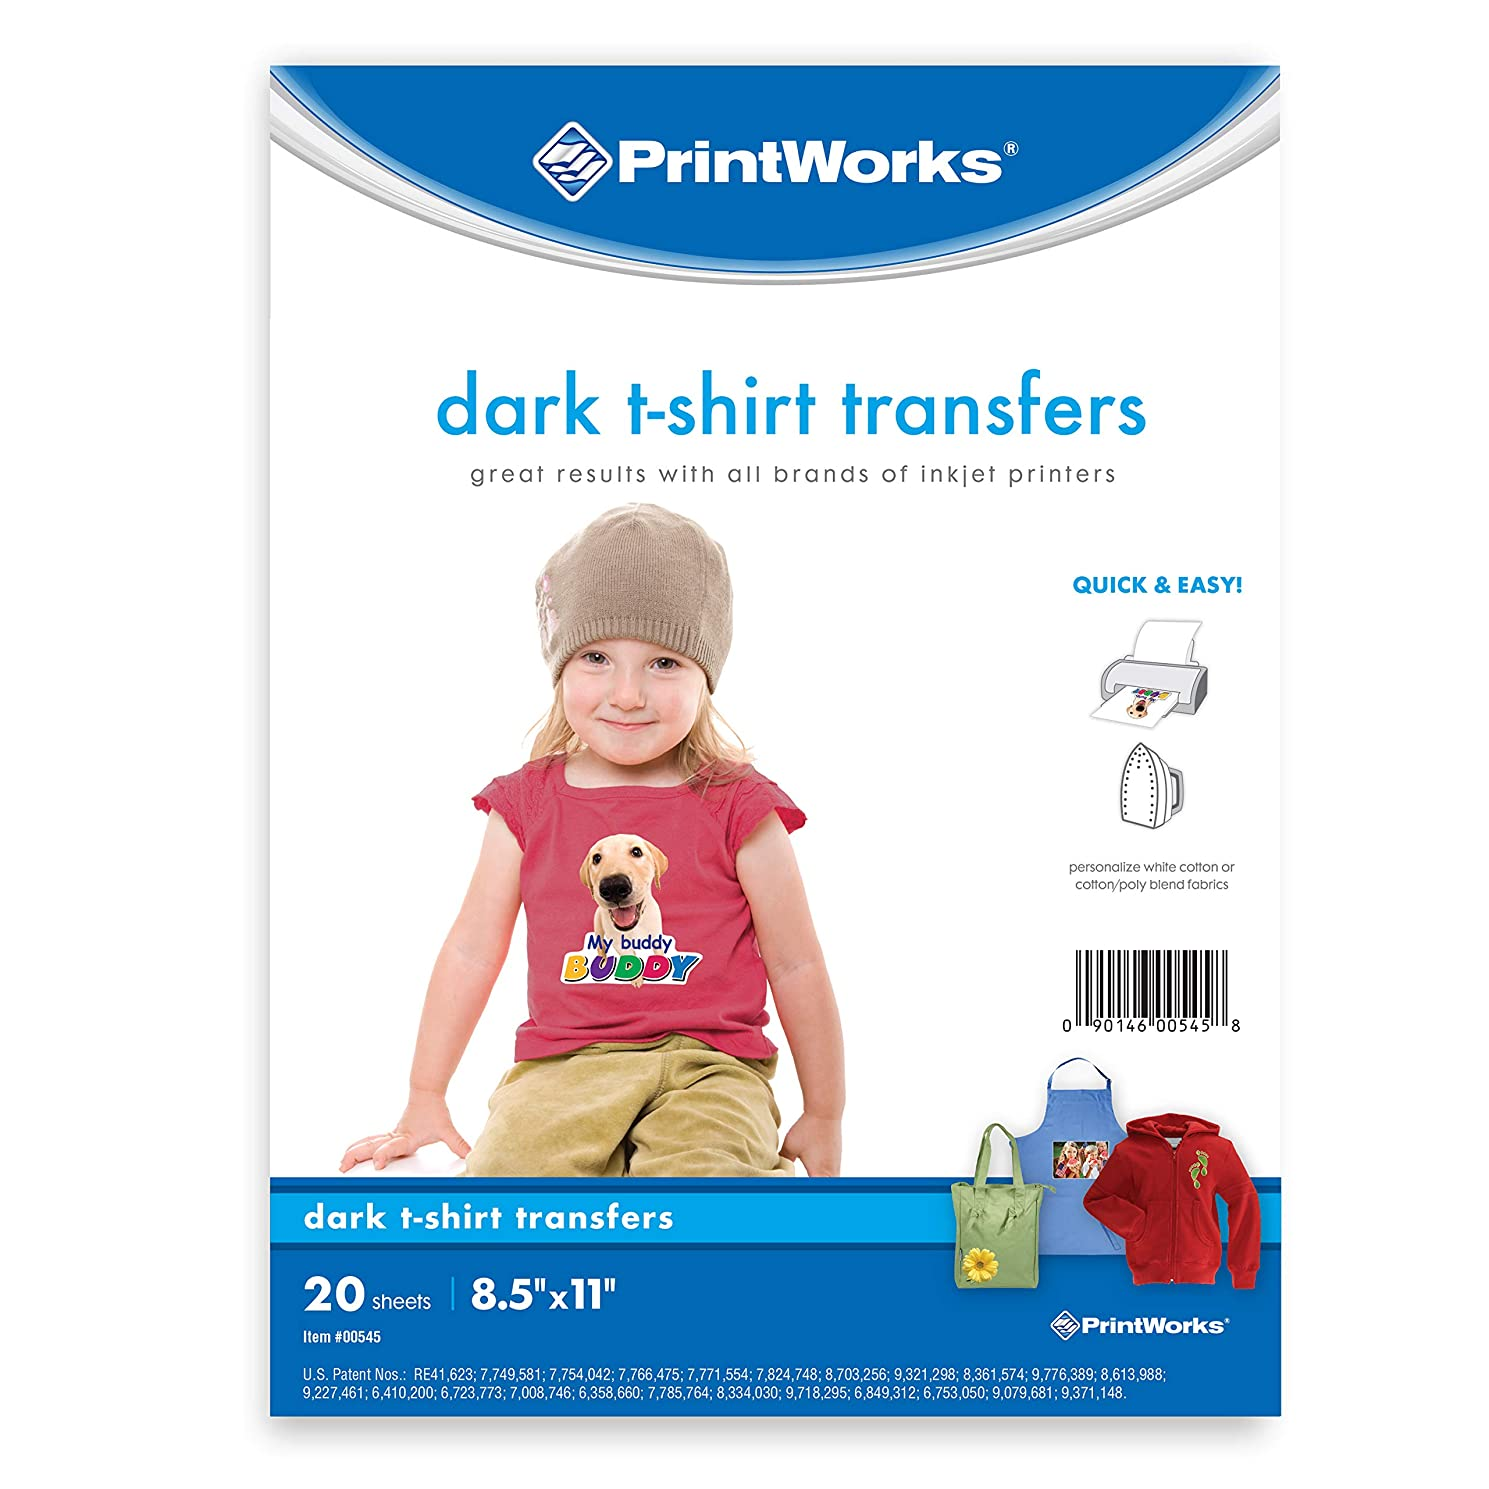 """Printworks Dark T-Shirt Transfers for Inkjet Printers, For Use on Dark and Light/White Fabrics, Photo Quality Prints, 20 Sheets 8 ?"""" x 11"""" (00545)"""